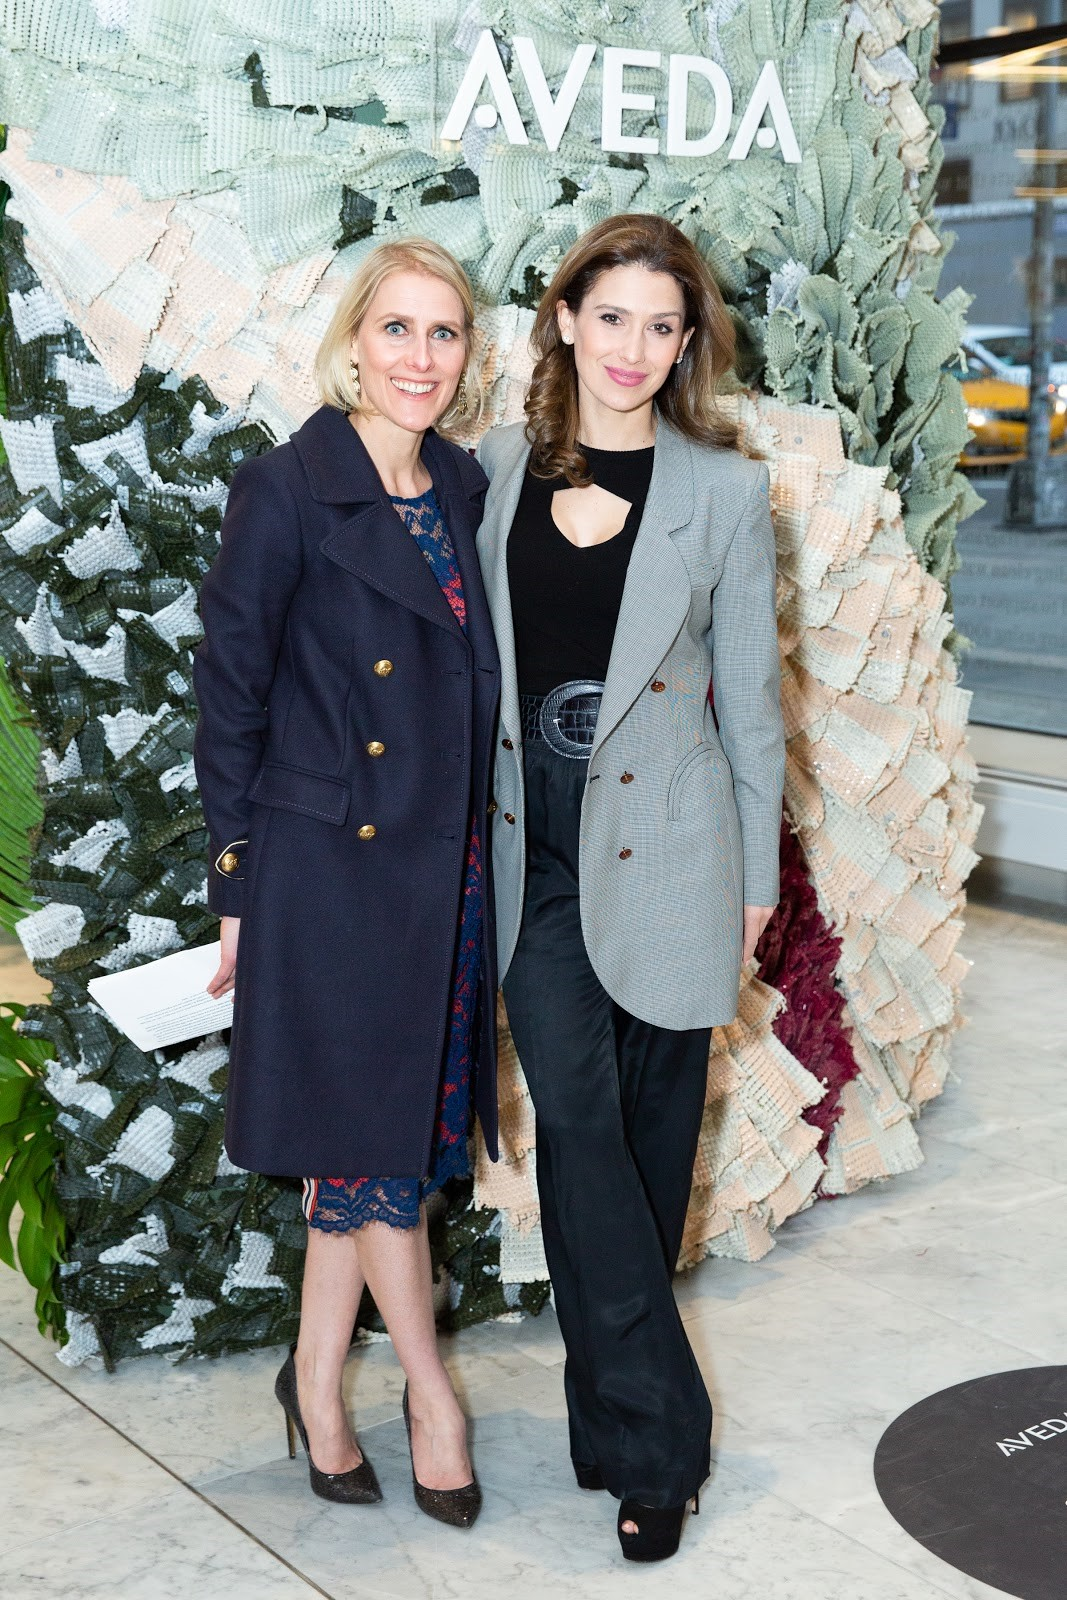 l-to-r: Aveda Global General Manager Barbara De Laere with Hilaria Baldwin, unveiling Aveda sustainability installation at FIT in New York City